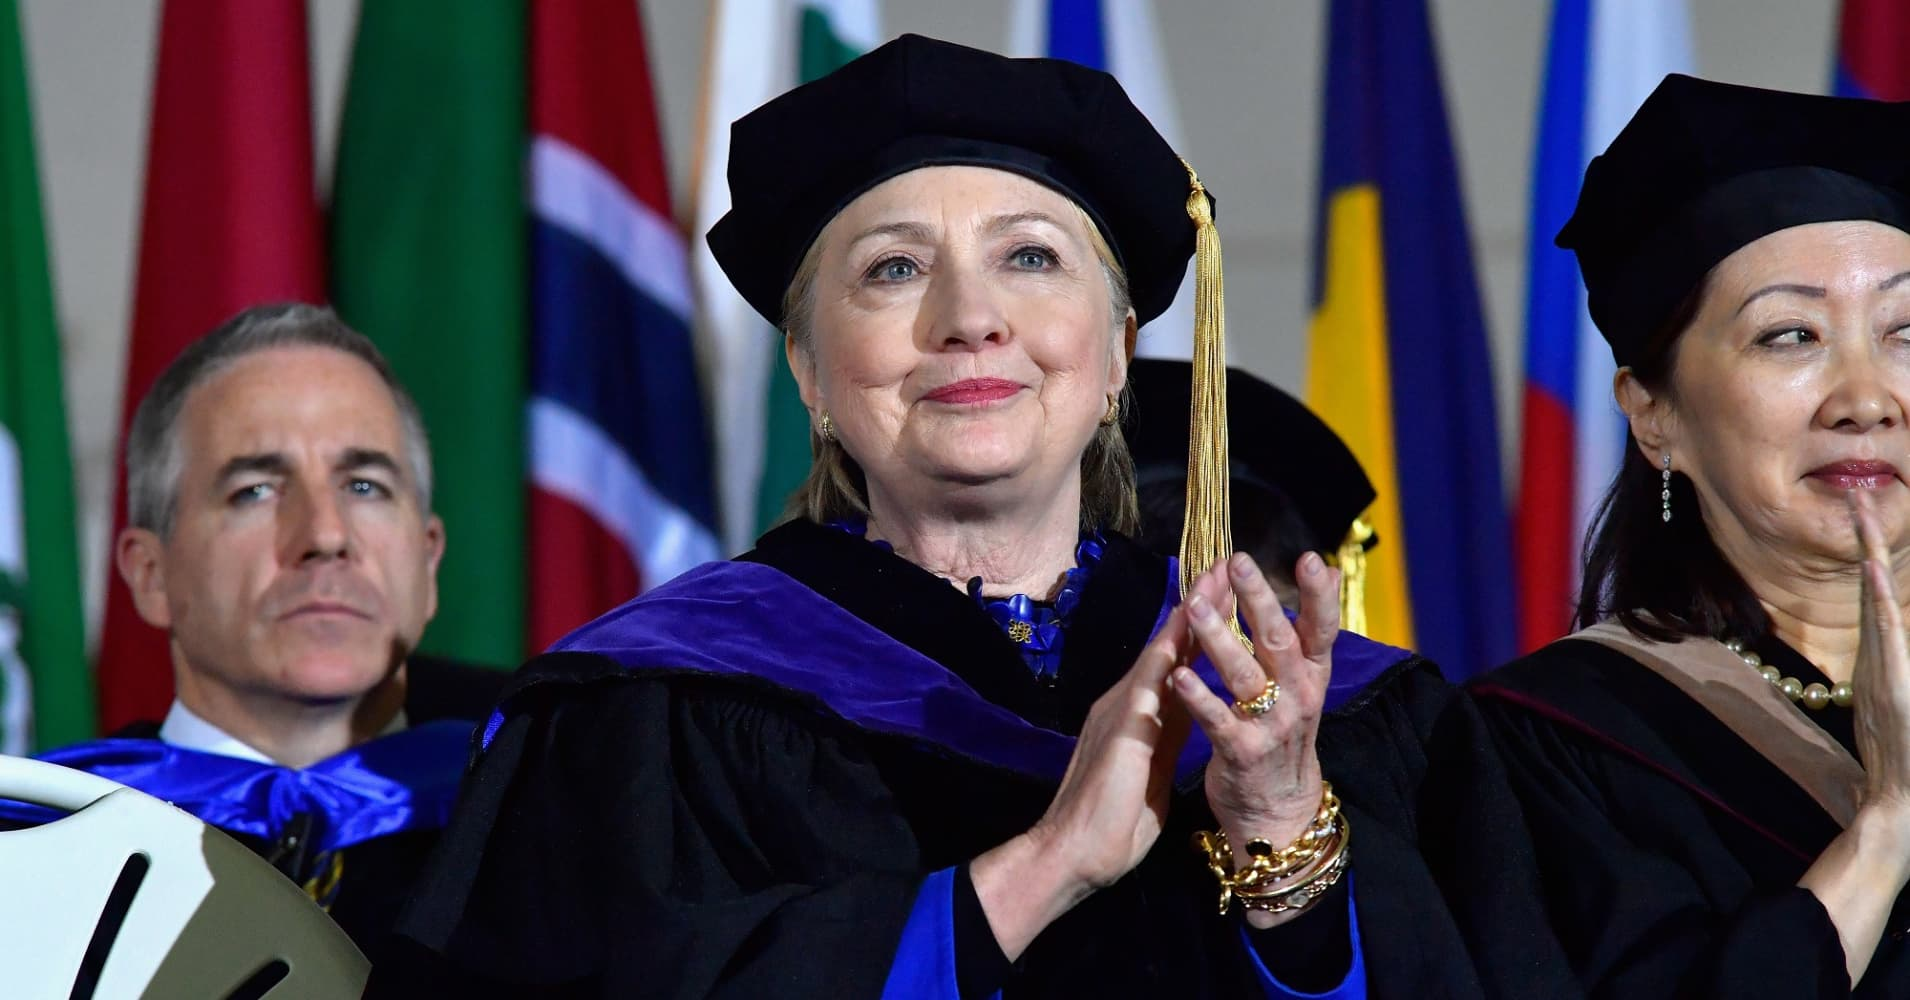 Hillary Clinton gave the Commencement Address at the Wellesley College 2017 166th Commencement Exercises at Wellesley College on May 26, 2017 in Boston, Massachusetts